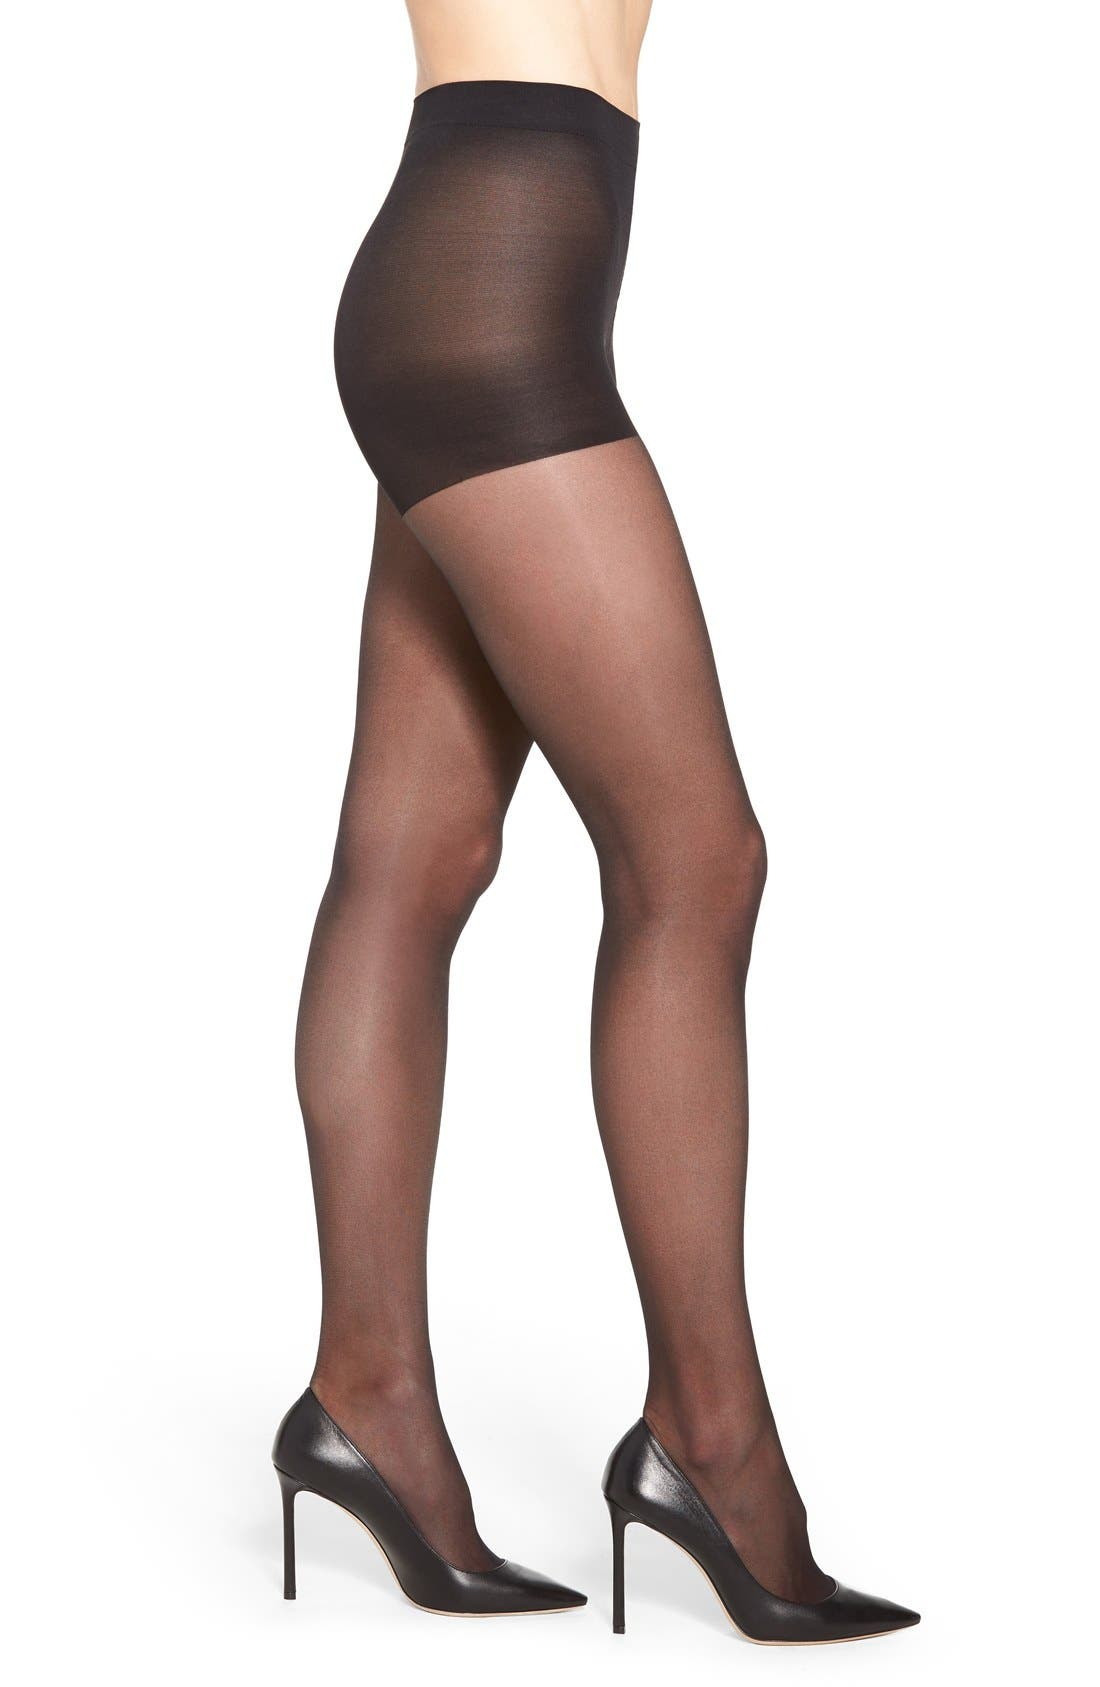 Pantyhose cd site megauploadf